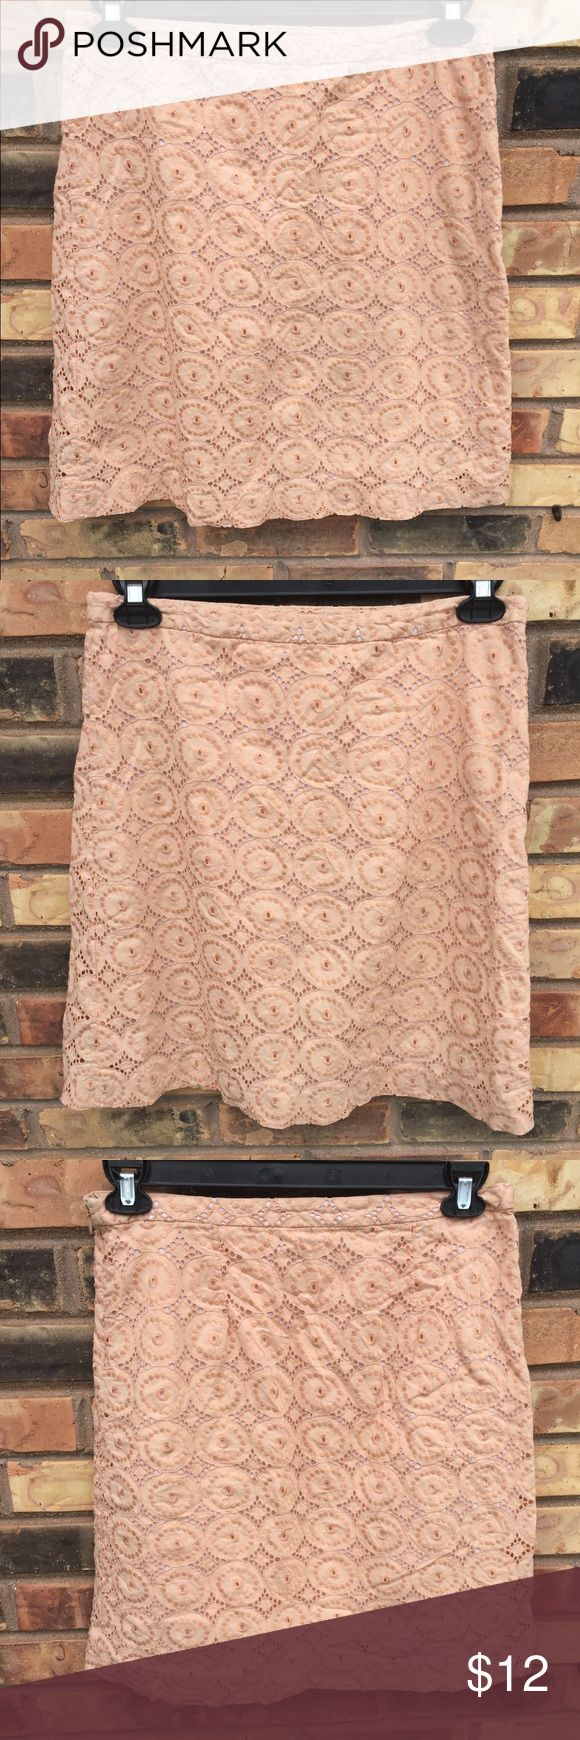 Banana Republic peach stamp out skirt size 8 Banana Republic peach stamp out size8 skirt GUC Please see pictures for details side zipper very cute Banana Republic Skirts